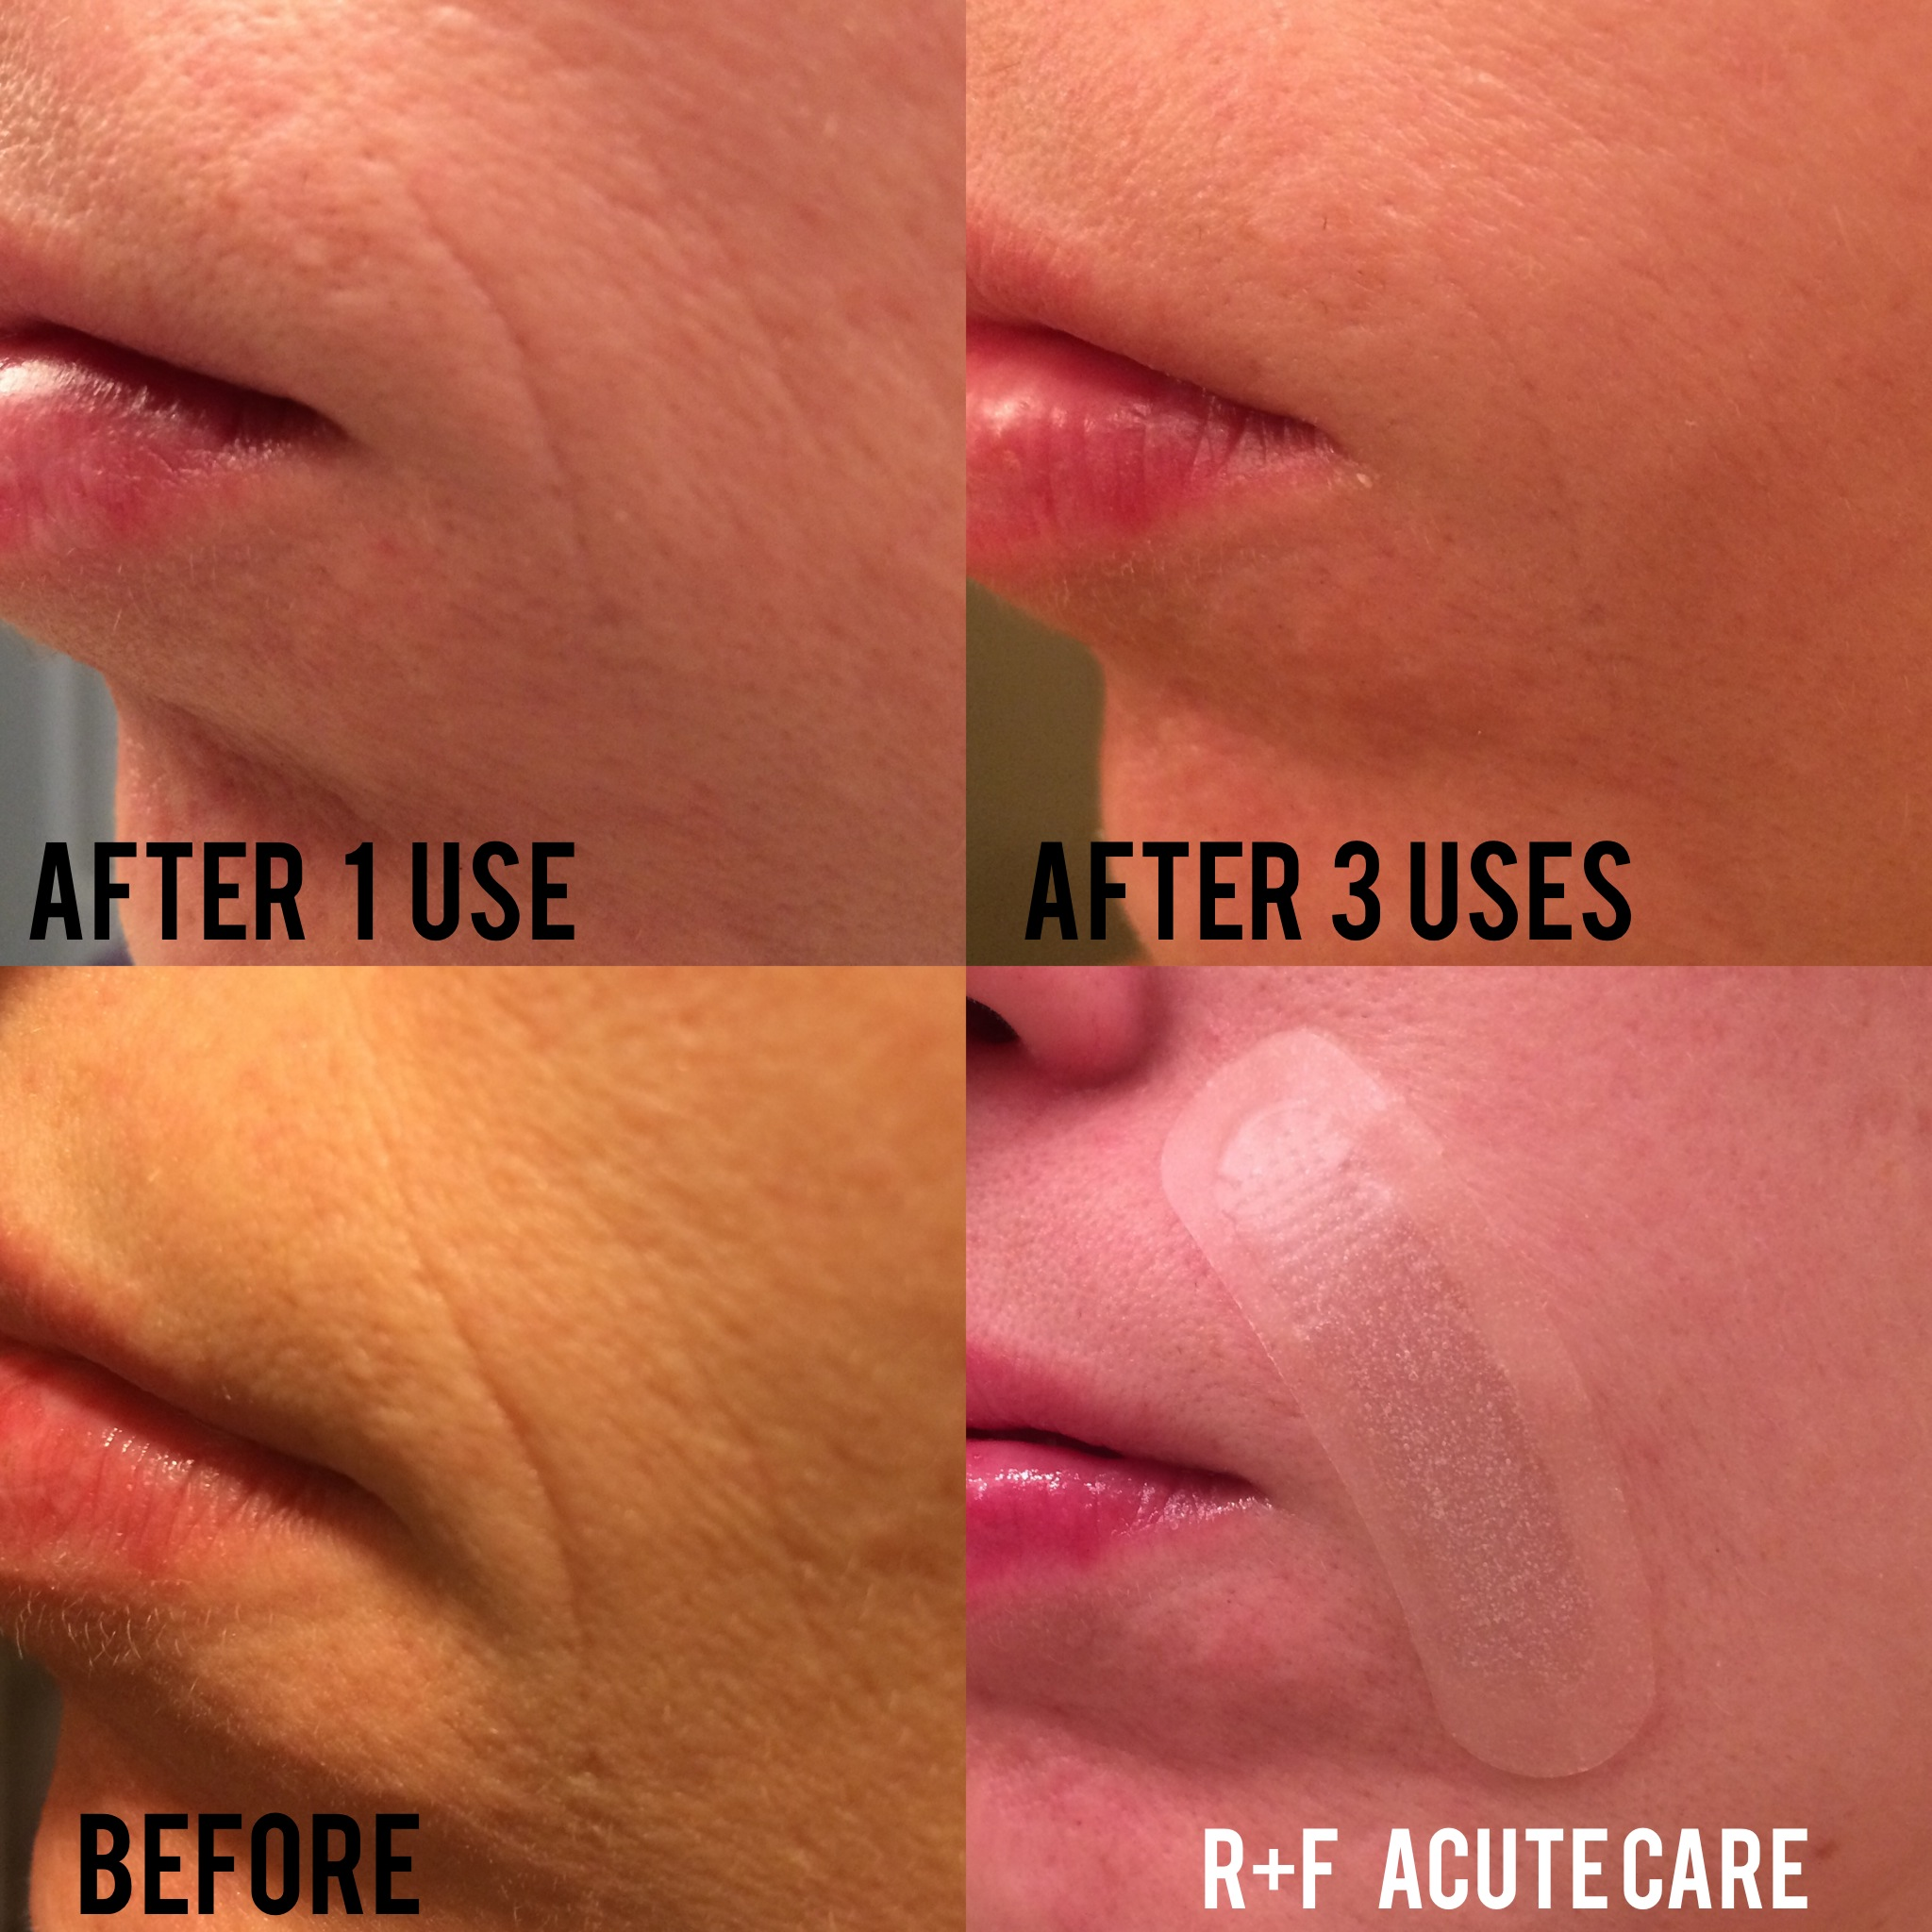 My Acute Care Results